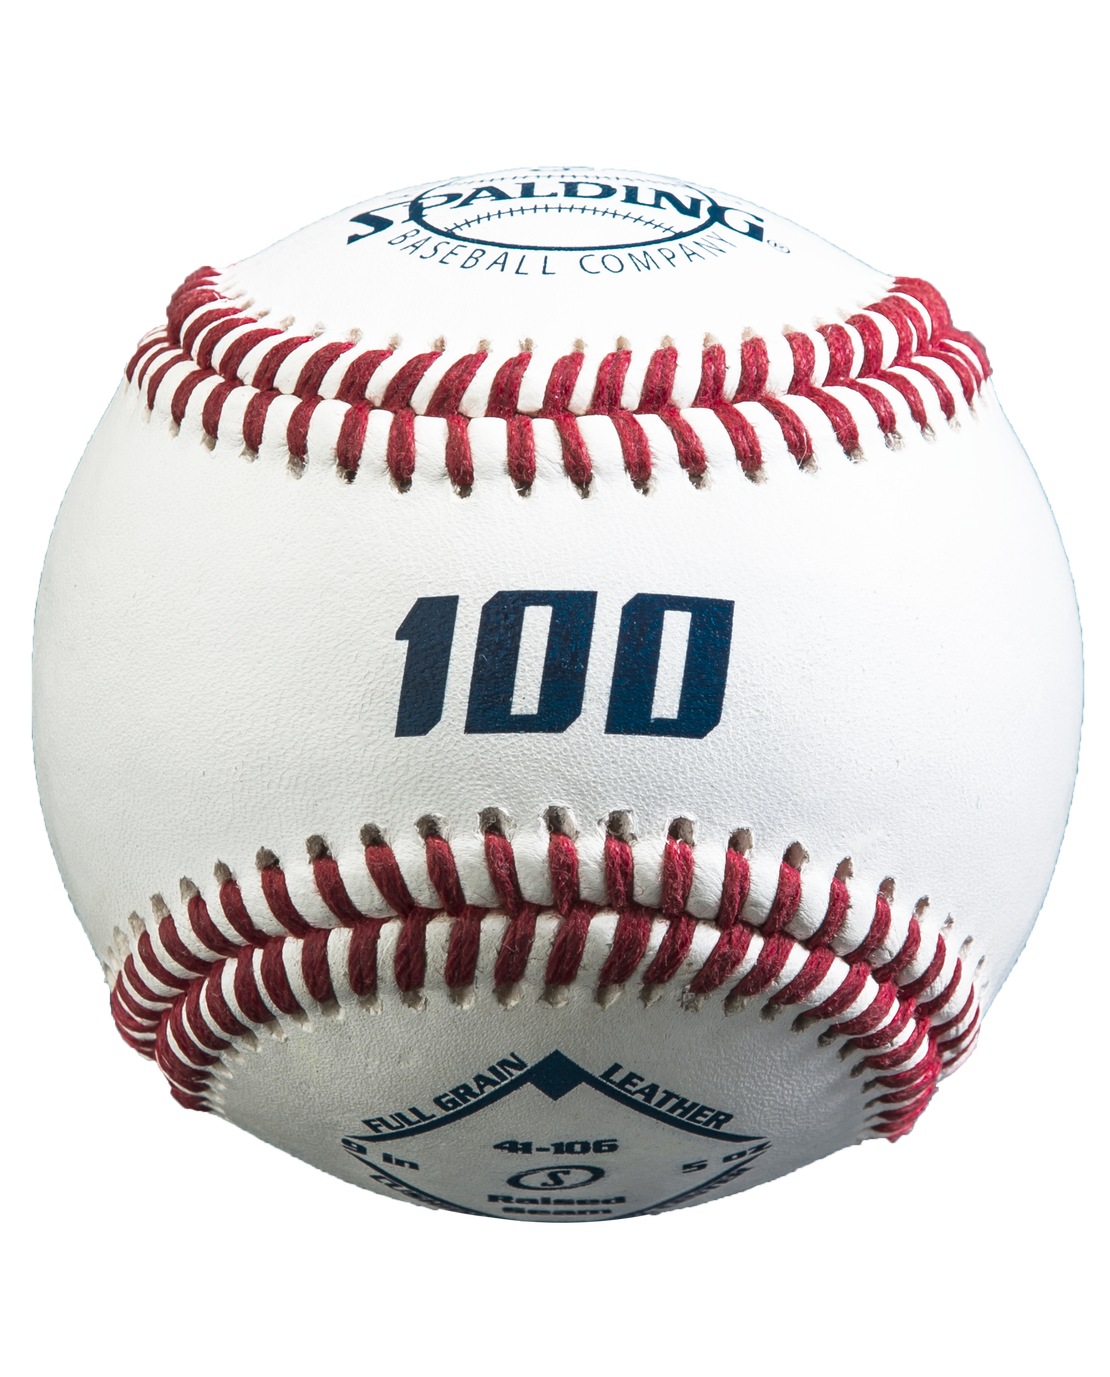 RAISED SEAM 100 OFFICIAL LEAGUE TOURNAMENT BASEBALL - 12 PACK